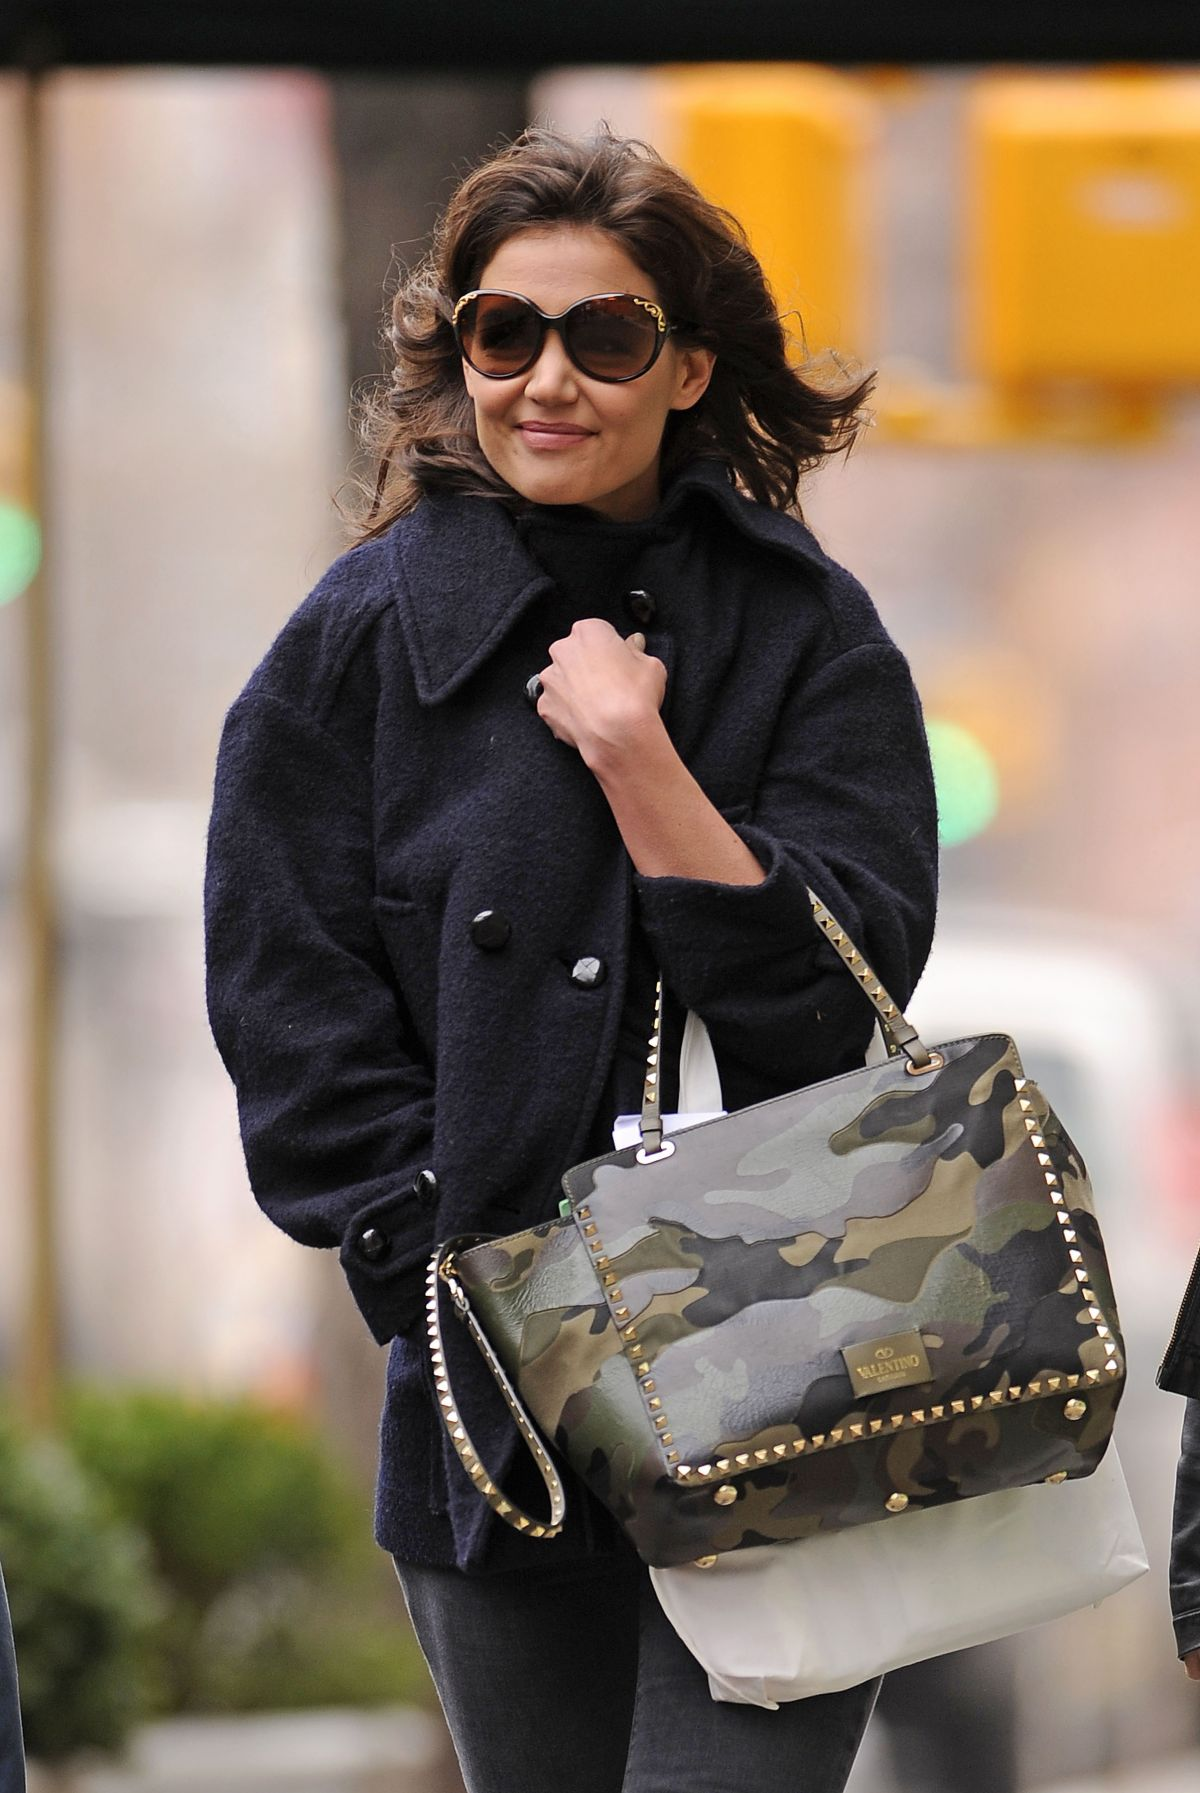 KATIE HOLMES Heading to Set of Dangerous Liaisons in New York